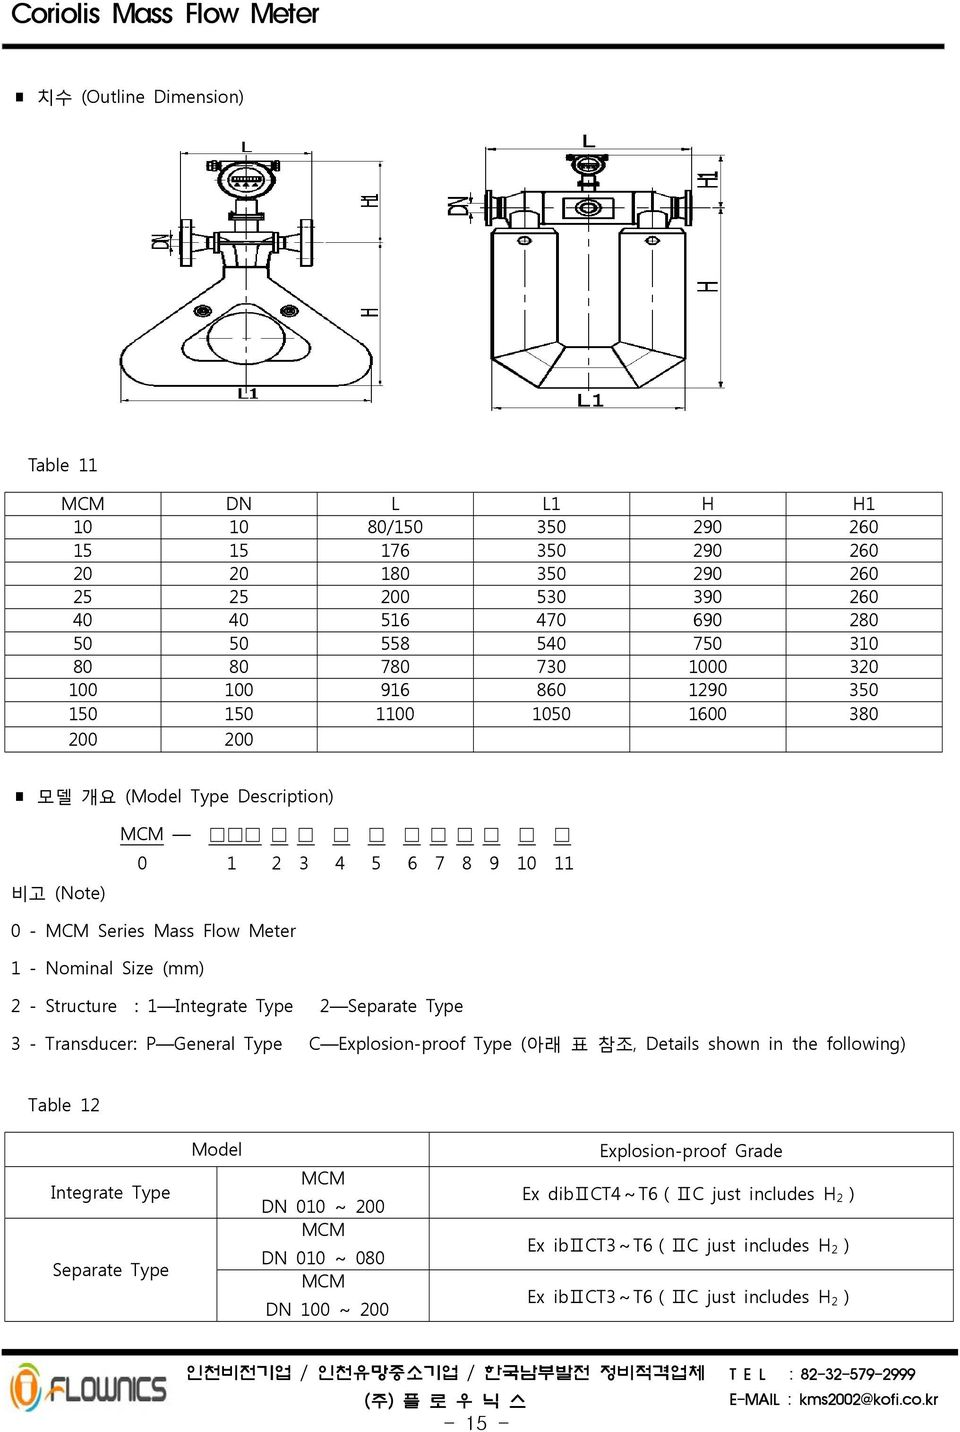 Size (mm) 2 - Structure : 1 Integrate Type 2 Separate Type 3 - Transducer: P General Type C Explosion-proof Type (아래 표 참조, Details shown in the following) Table 12 Integrate Type Separate